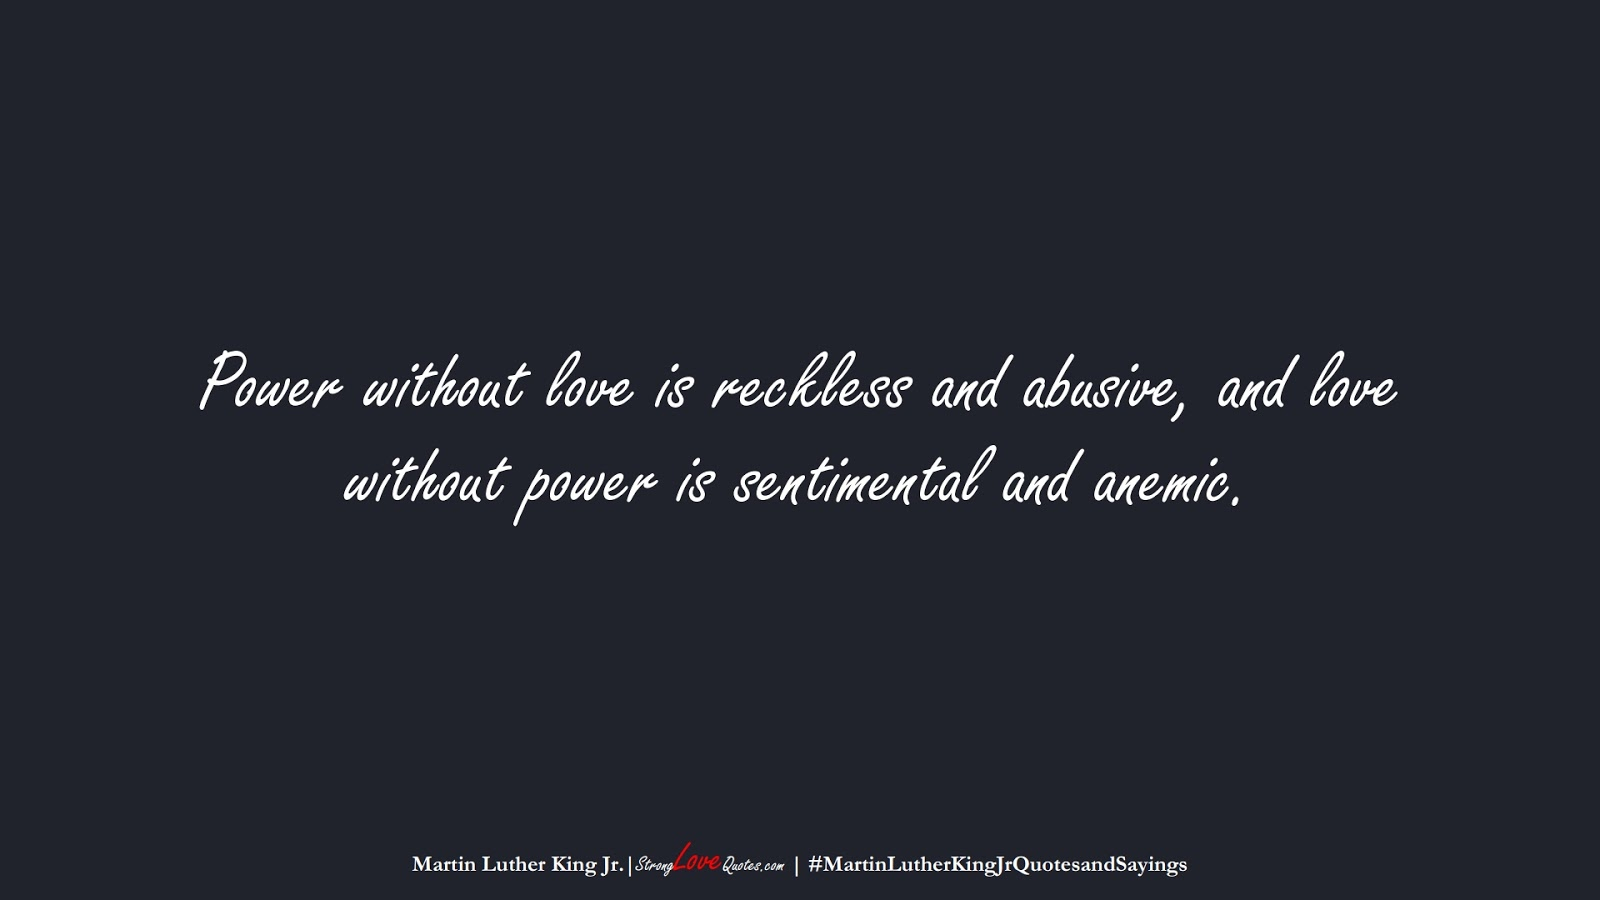 Power without love is reckless and abusive, and love without power is sentimental and anemic. (Martin Luther King Jr.);  #MartinLutherKingJrQuotesandSayings